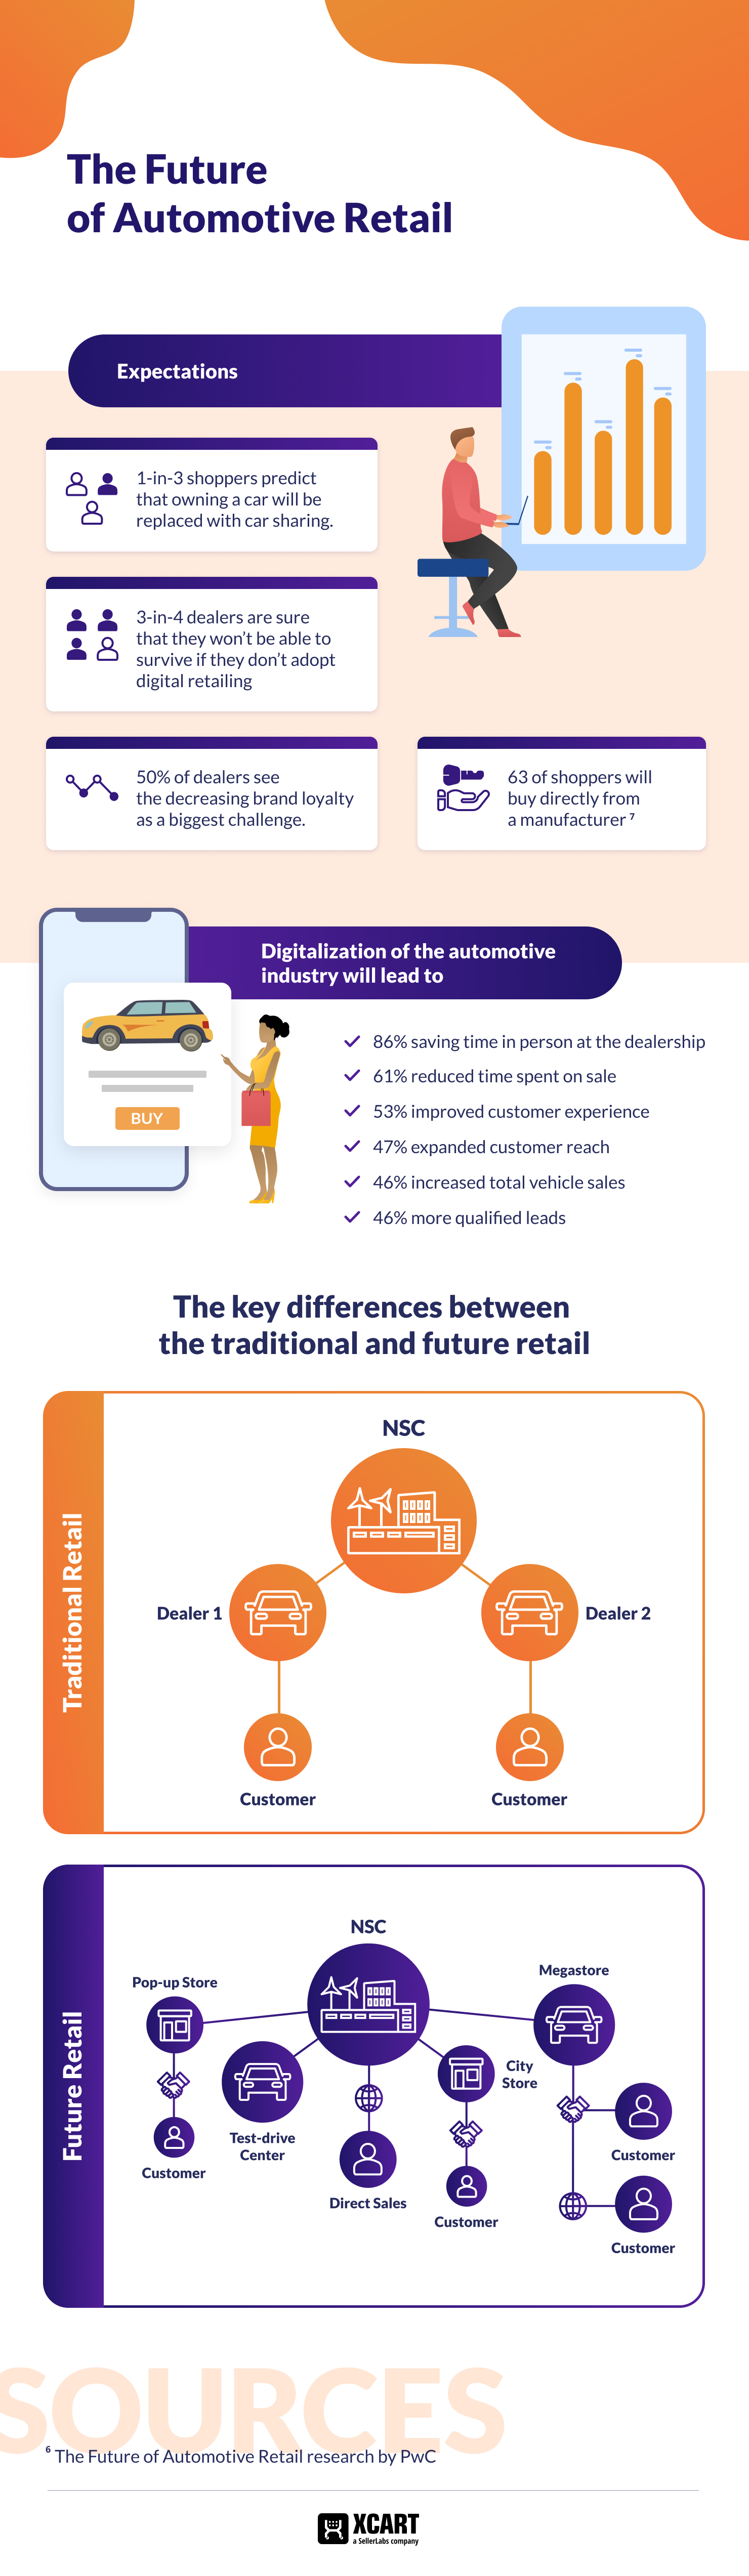 The future of the automotive retail